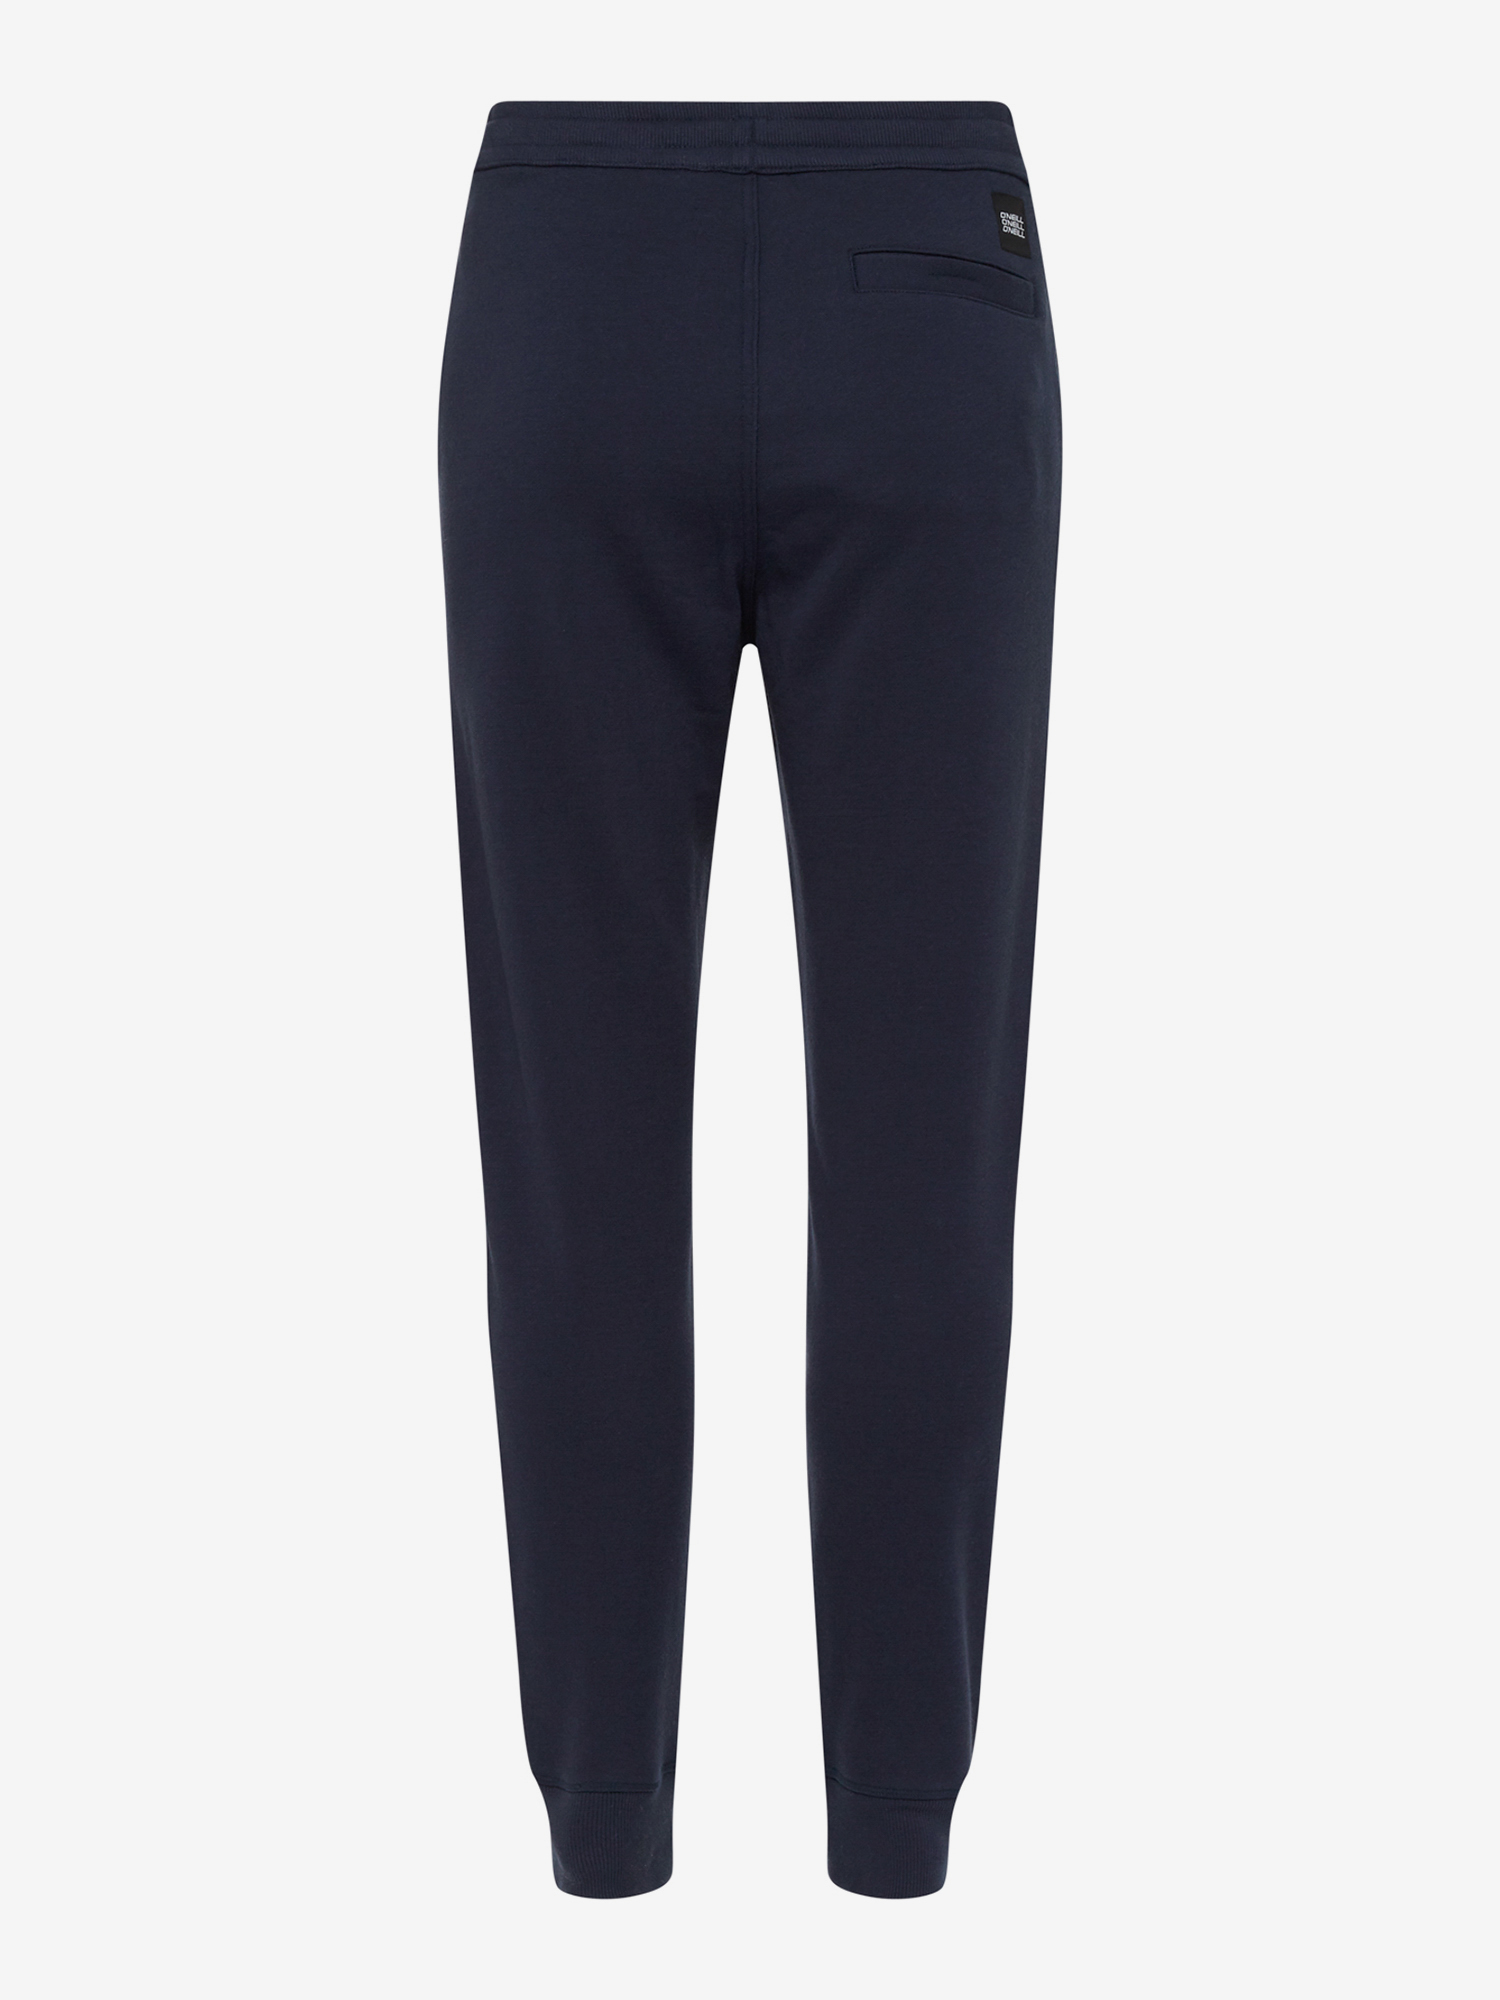 Tepláky O´Neill Lm Cliff Sweatpants (2)